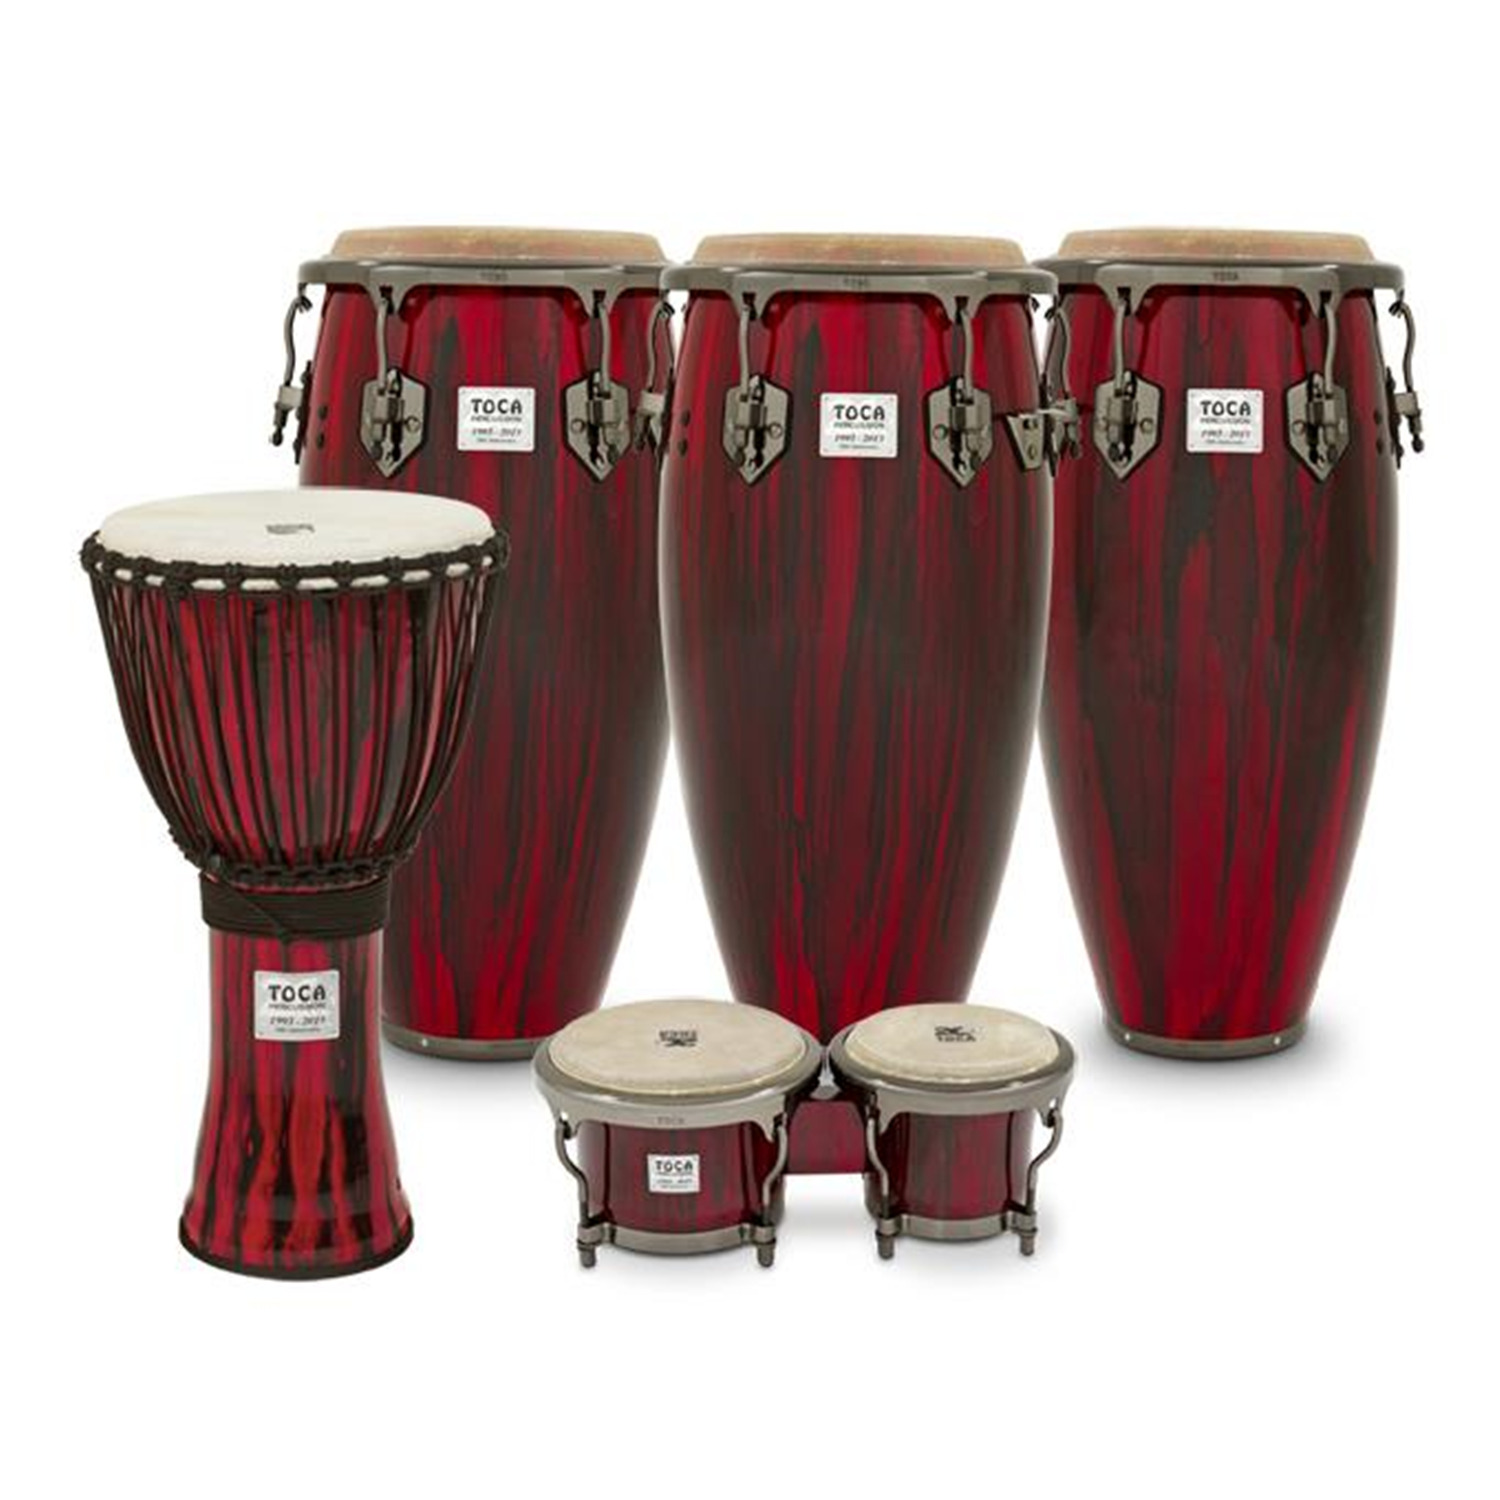 toca 20th anniversary congas bongos and djembe set ojcommerce. Black Bedroom Furniture Sets. Home Design Ideas